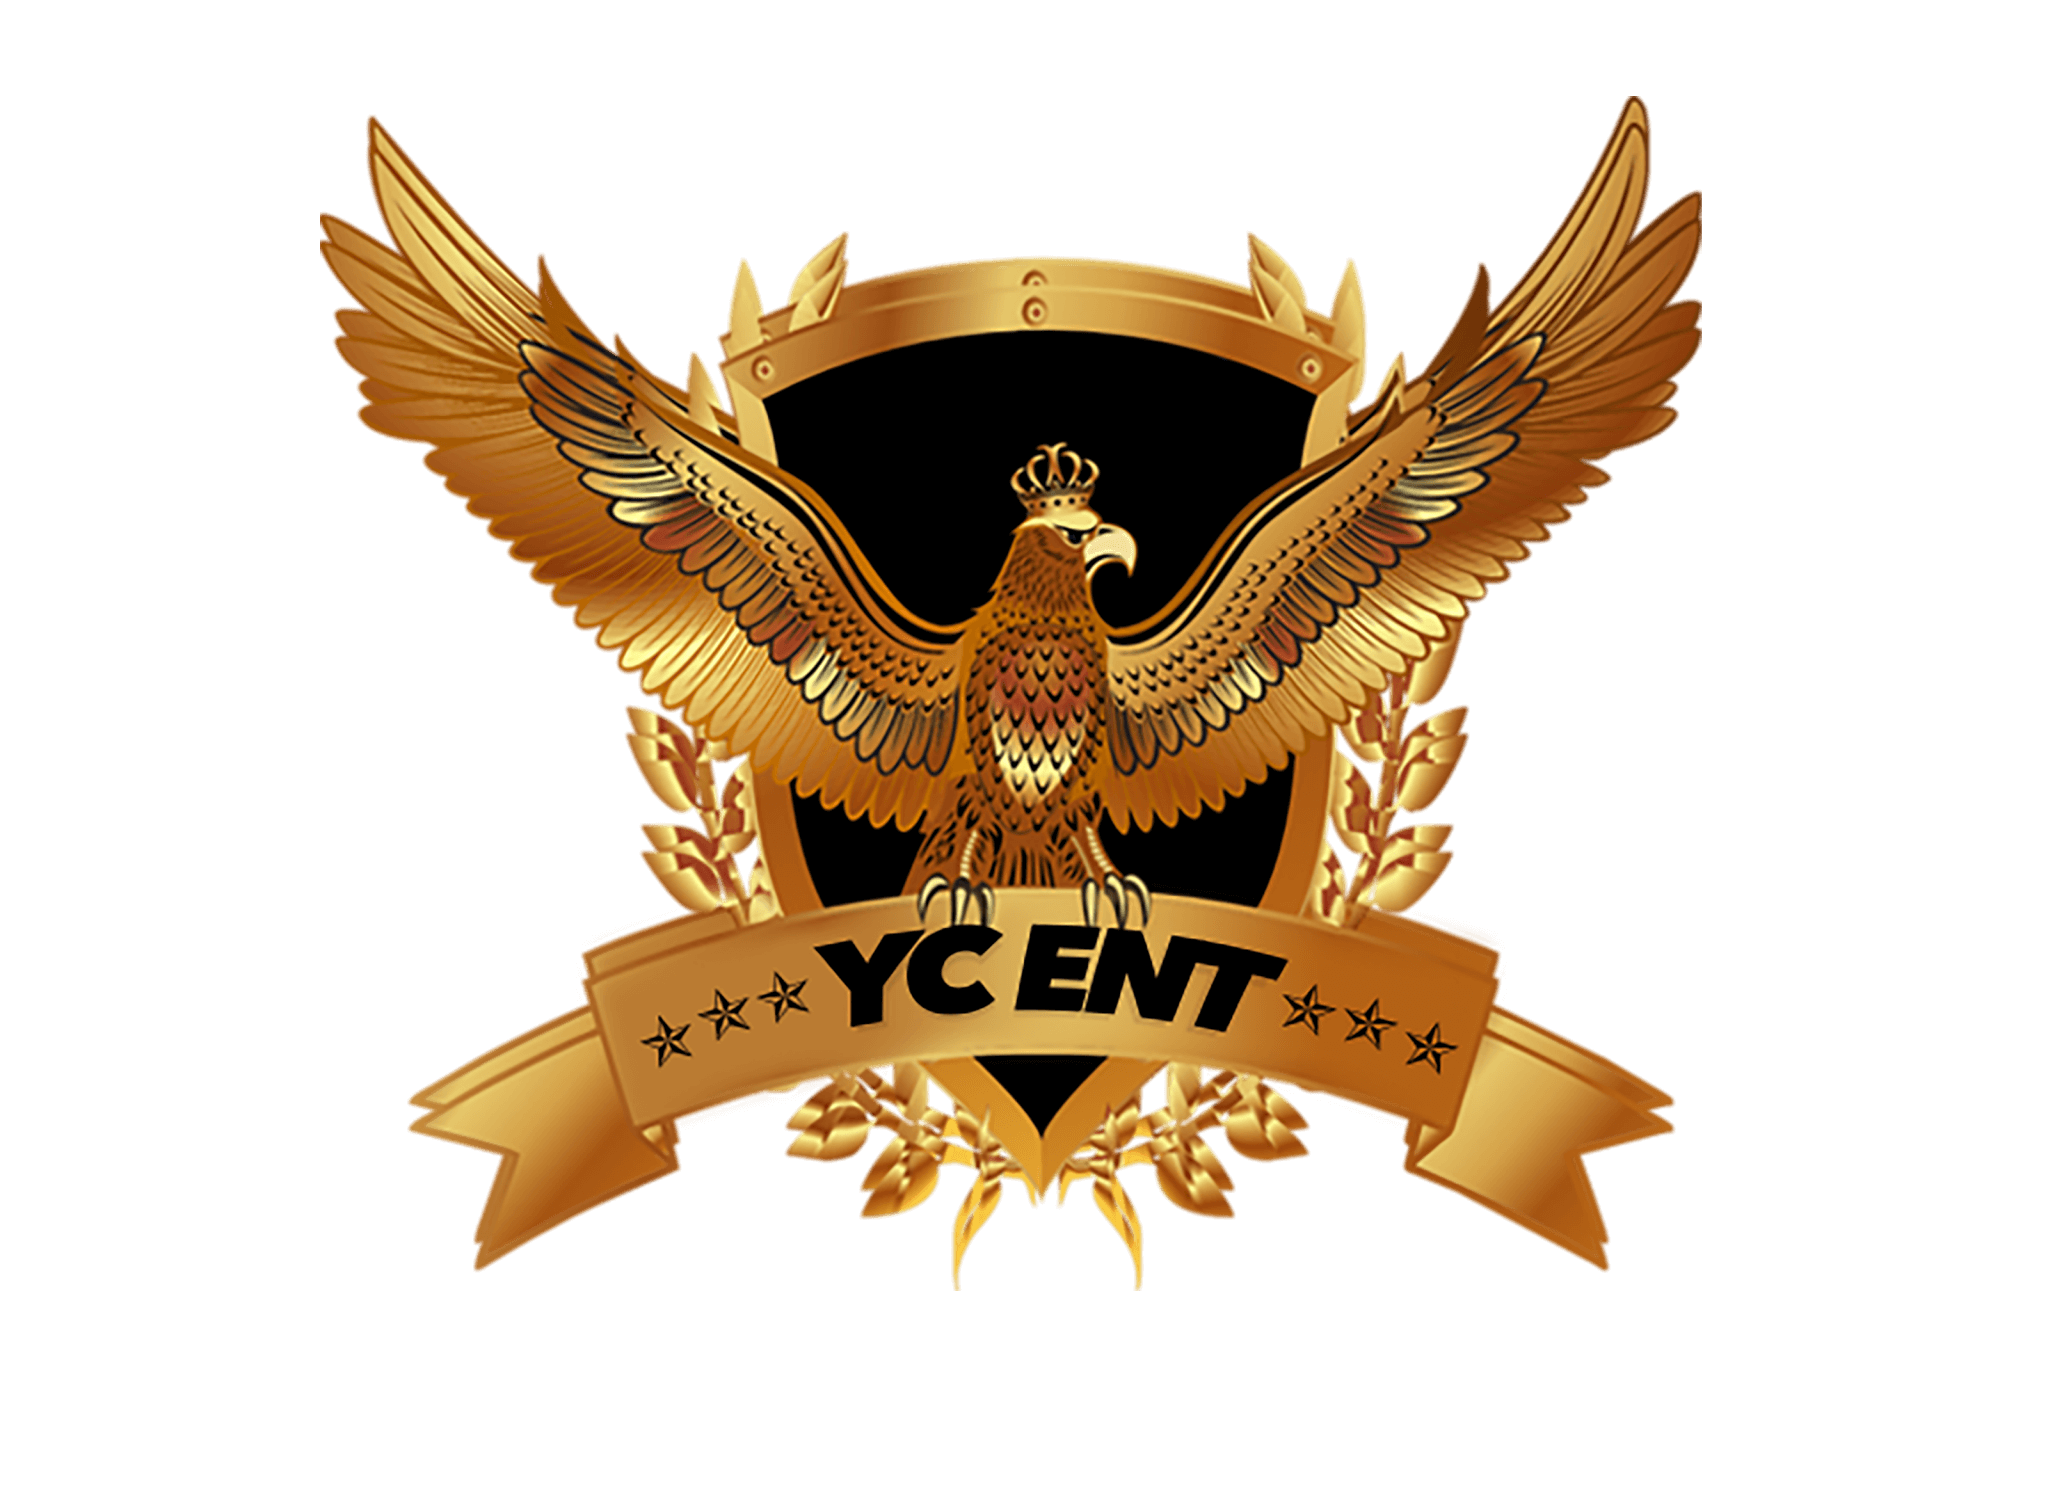 Yc Entertainment LLC